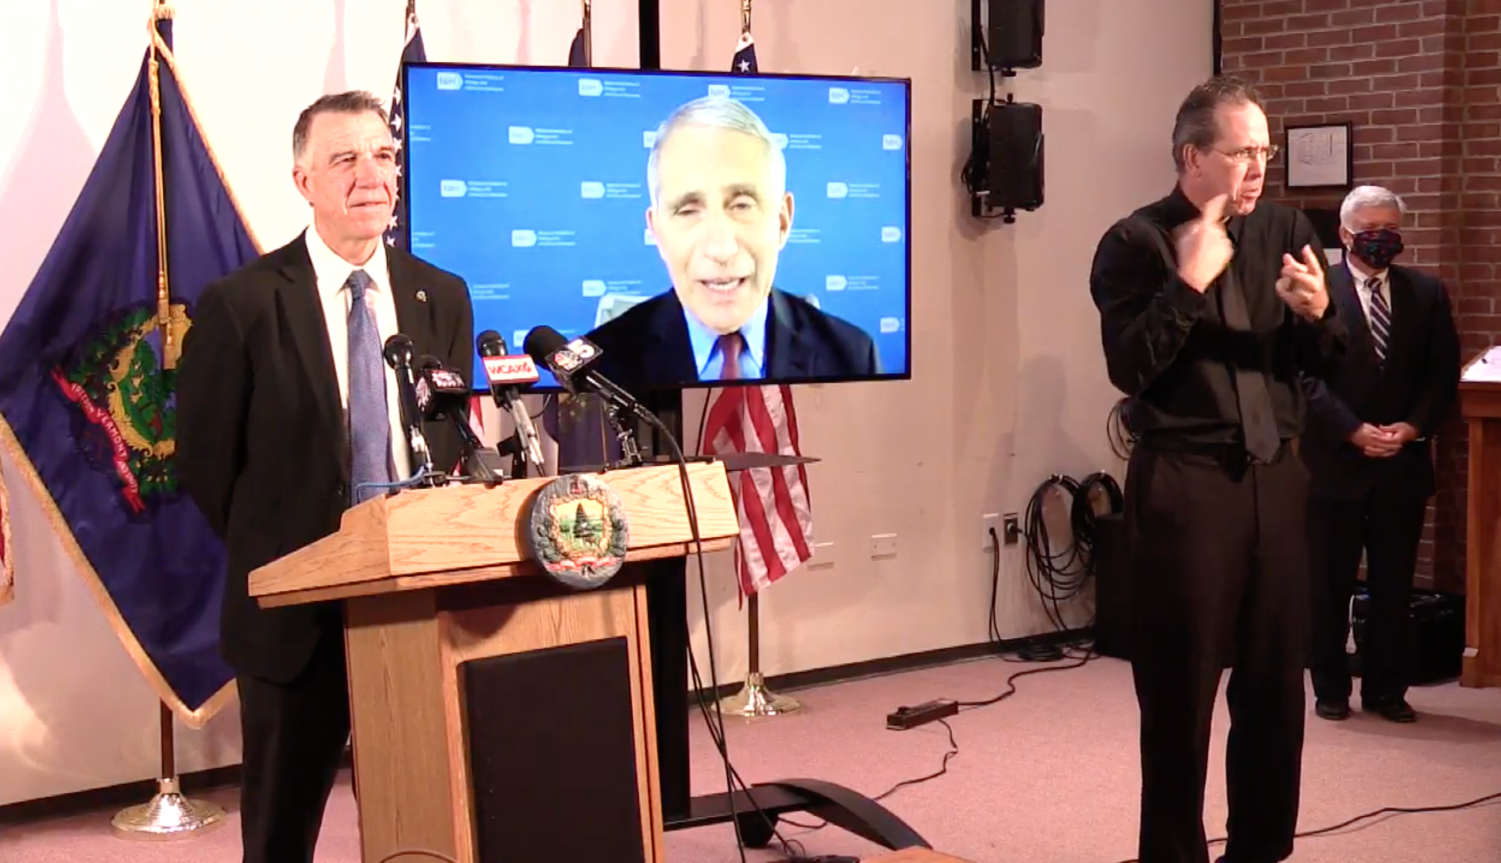 Dr. Anthony Fauci joined Vermont Gov. Phil Scott